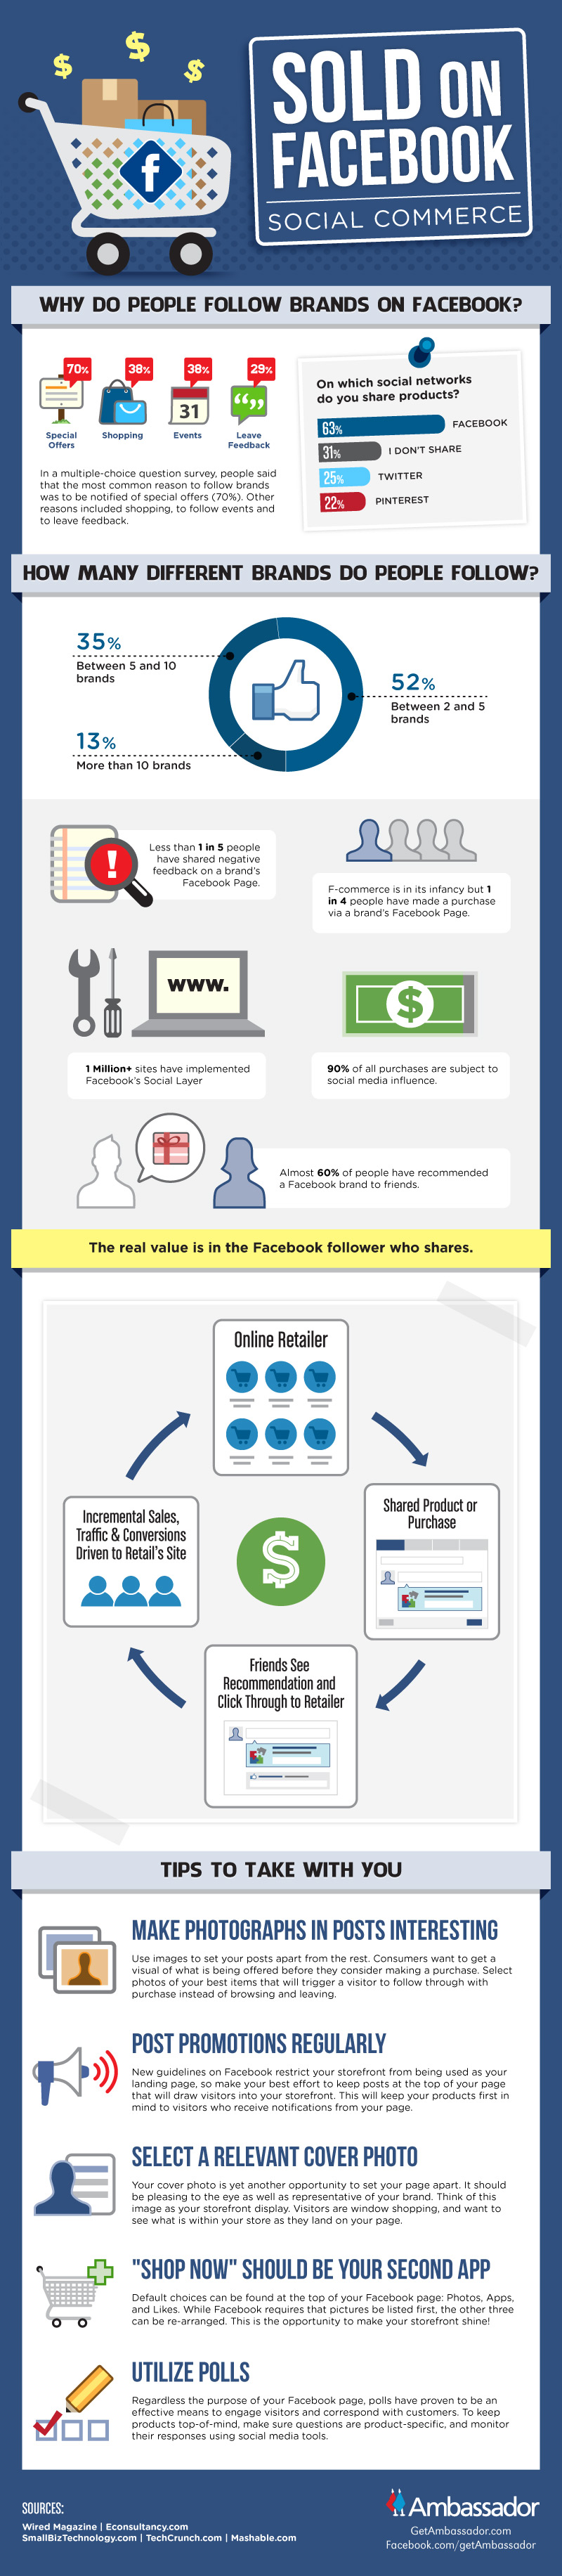 Social commerce infographic